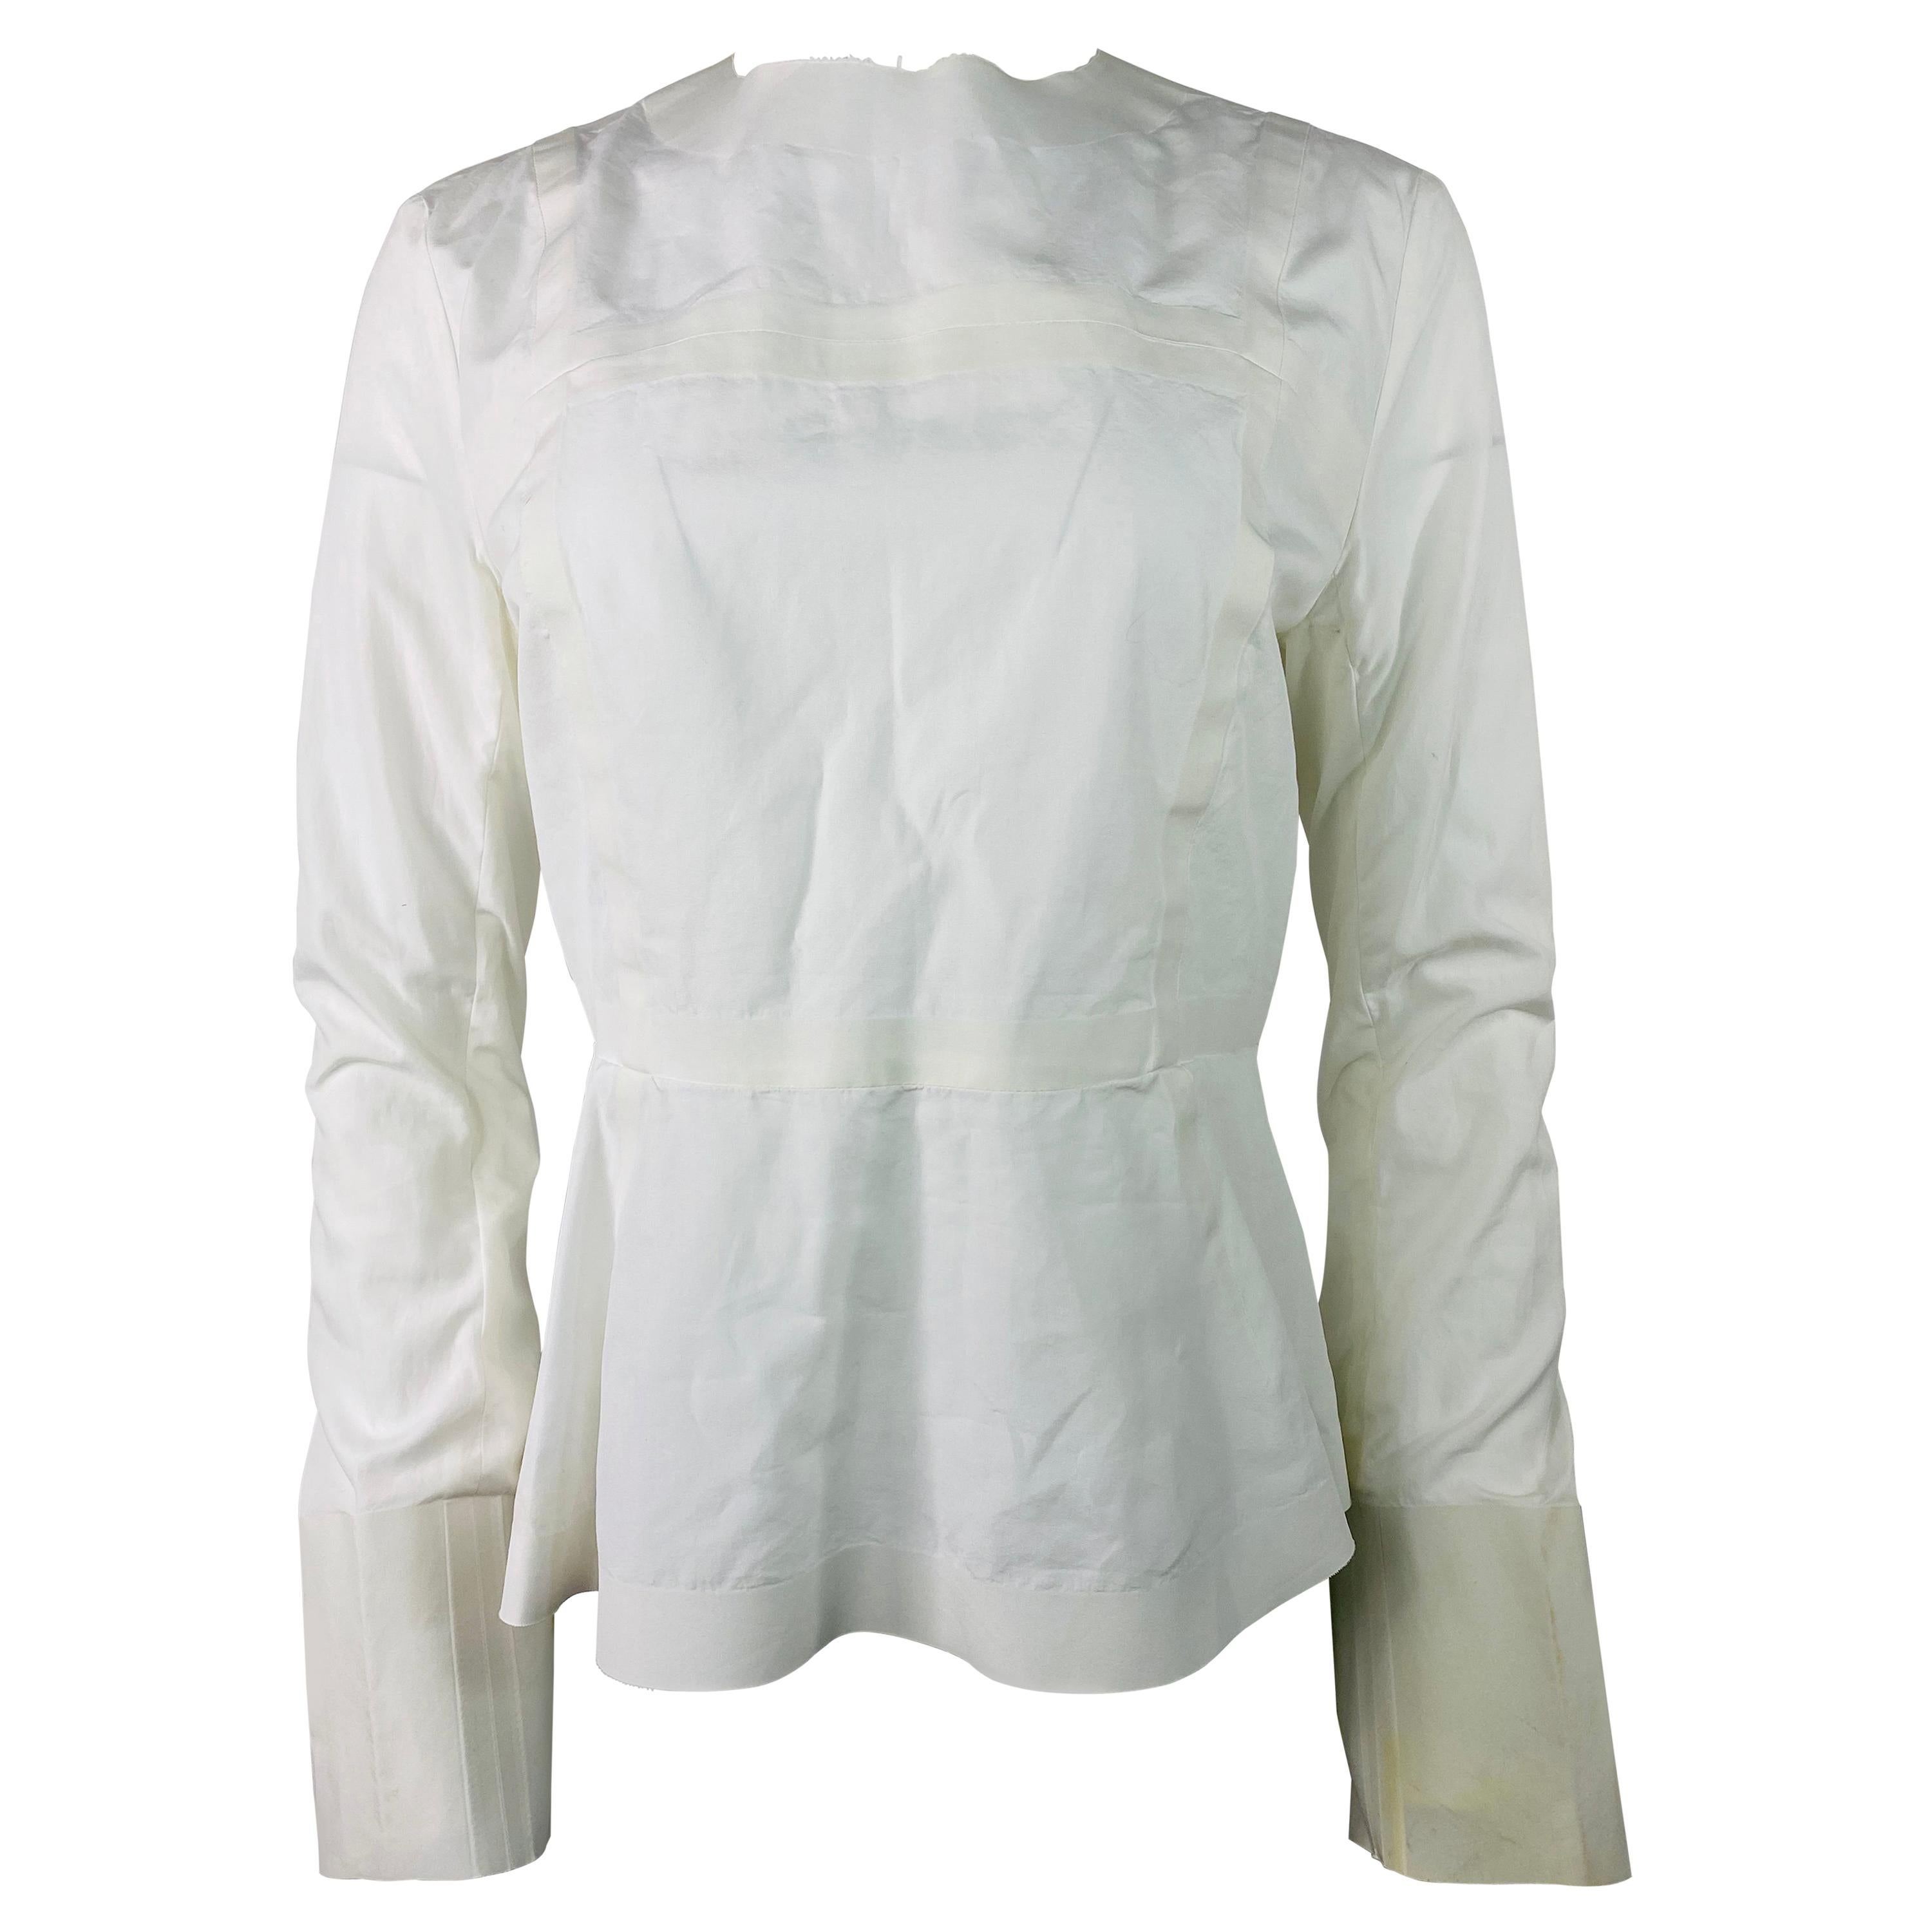 Celine White Cotton Long Sleeves Blouse Top Size 40